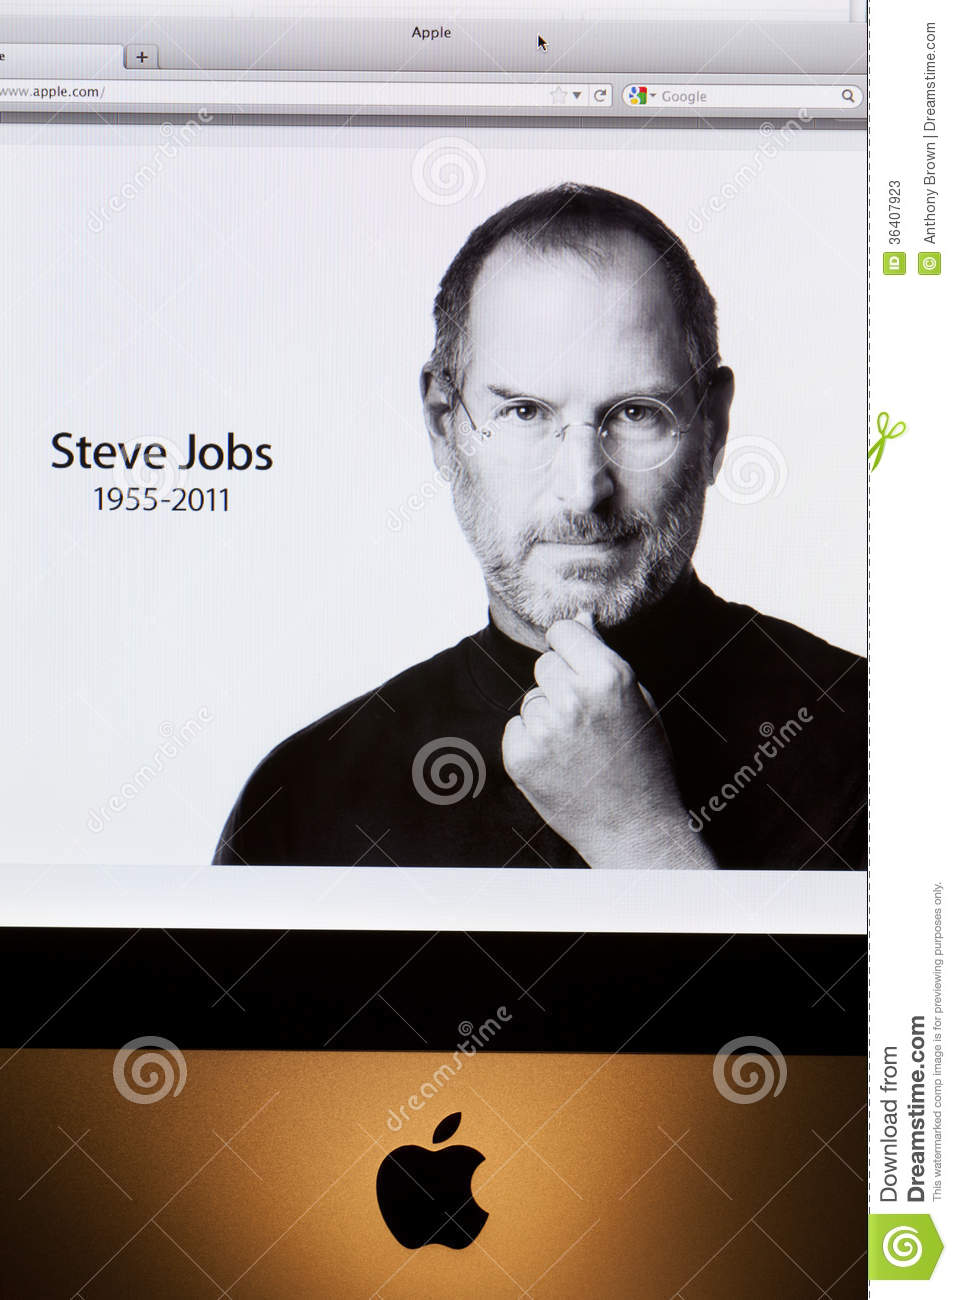 Tributo del sito Web di Apple a Steve Jobs